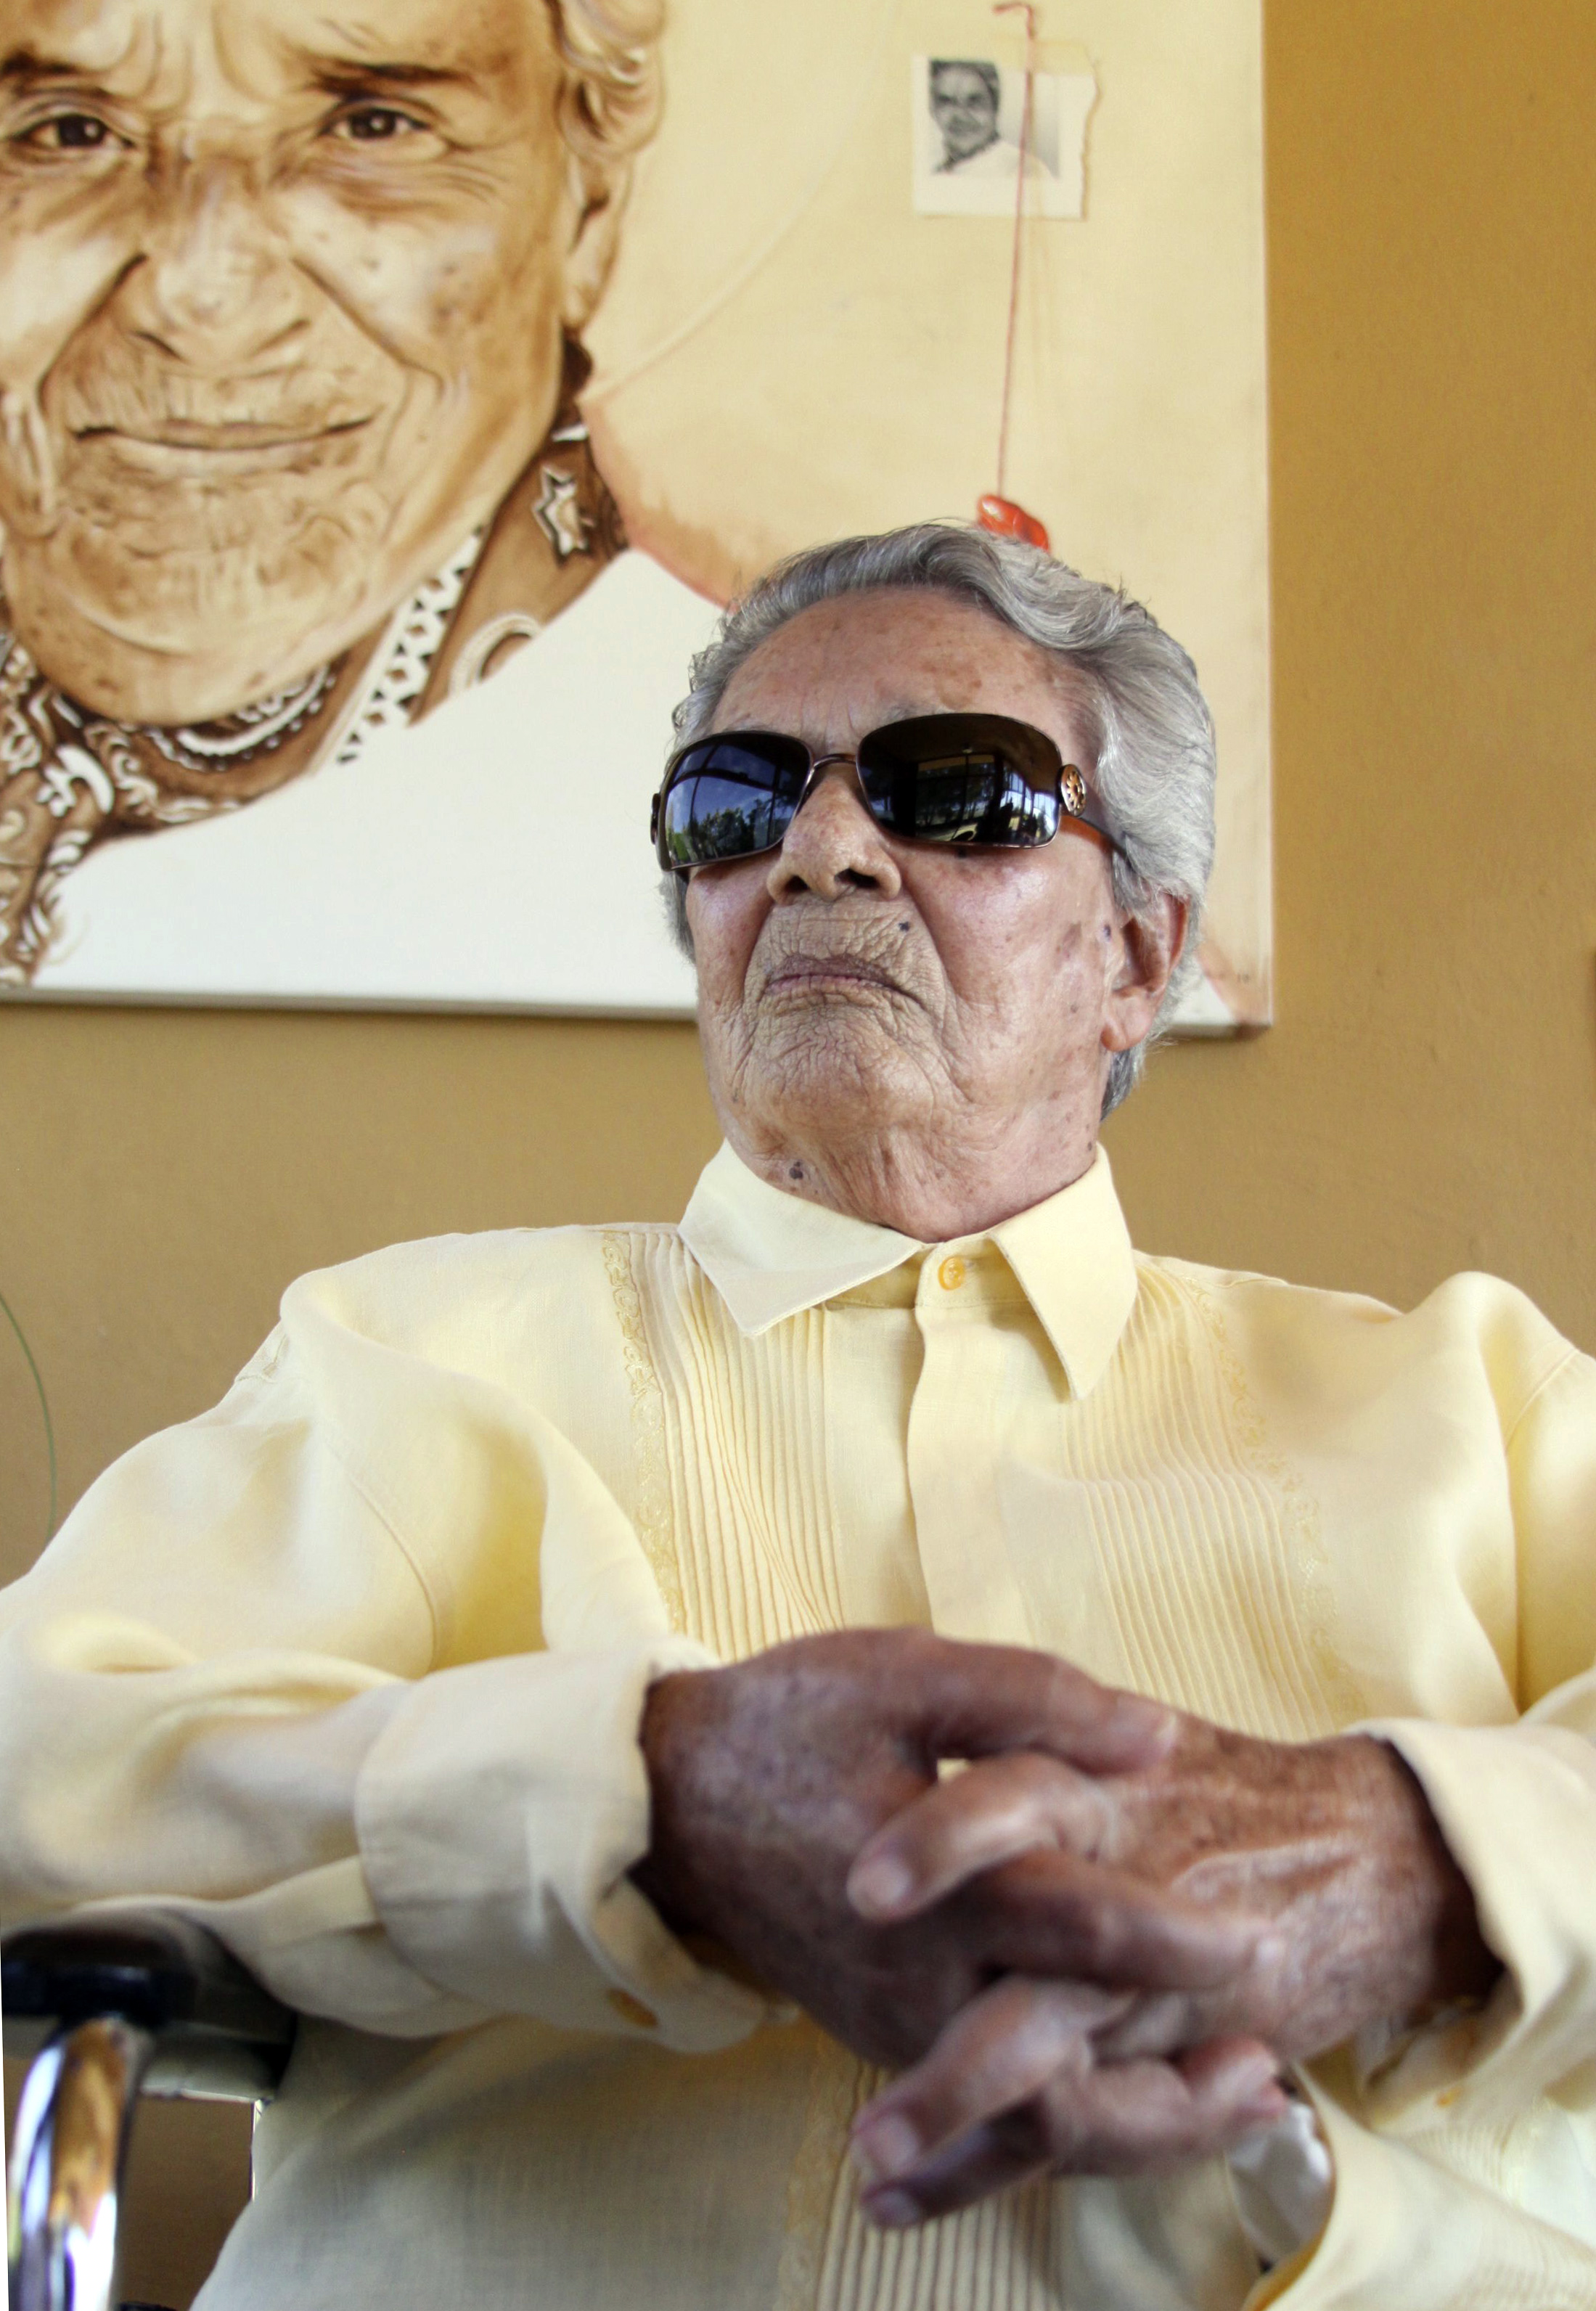 Chavela Vargas wears a yellow blouse and sunglasses and sits in front of a her painted portrait.